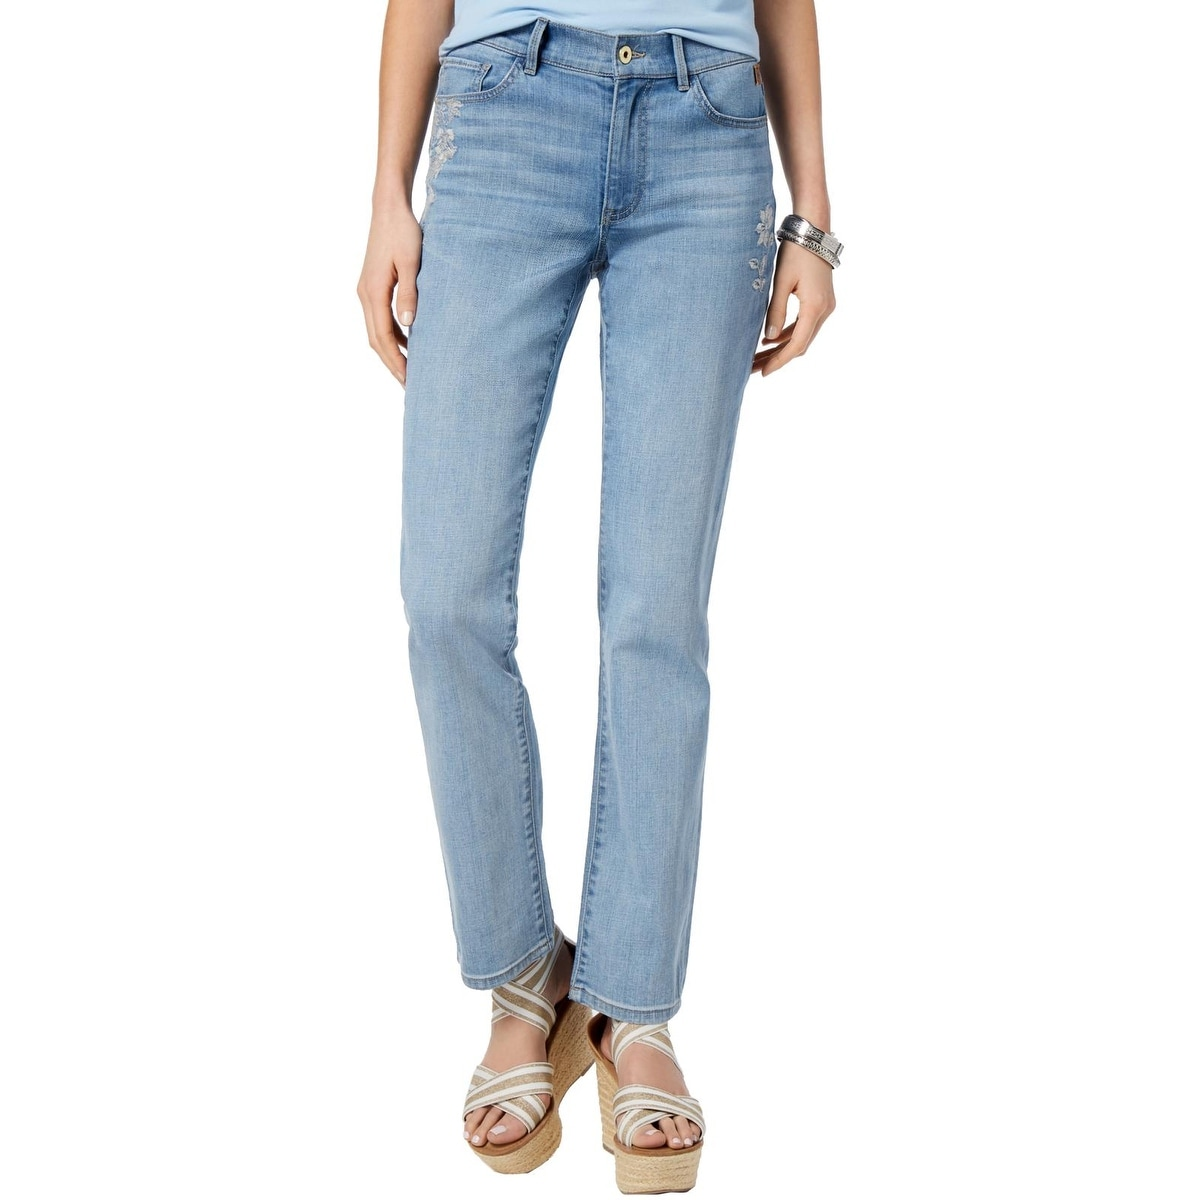 75a1debe0 Tommy Hilfiger Pants | Find Great Women's Clothing Deals Shopping at  Overstock